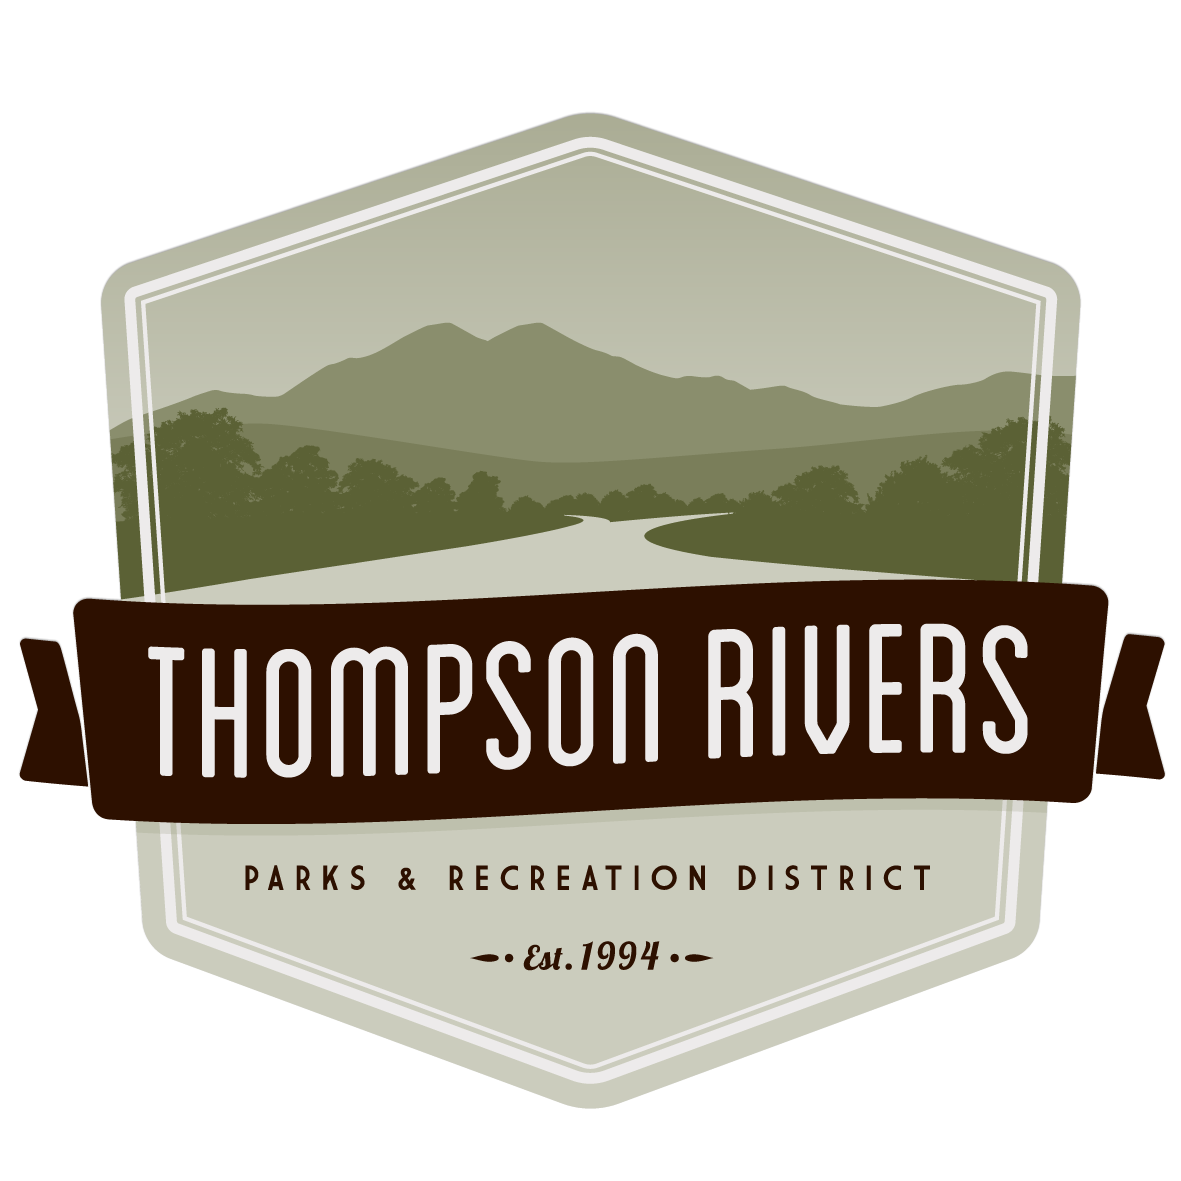 Thompson Rivers Parks & Recreation District logo